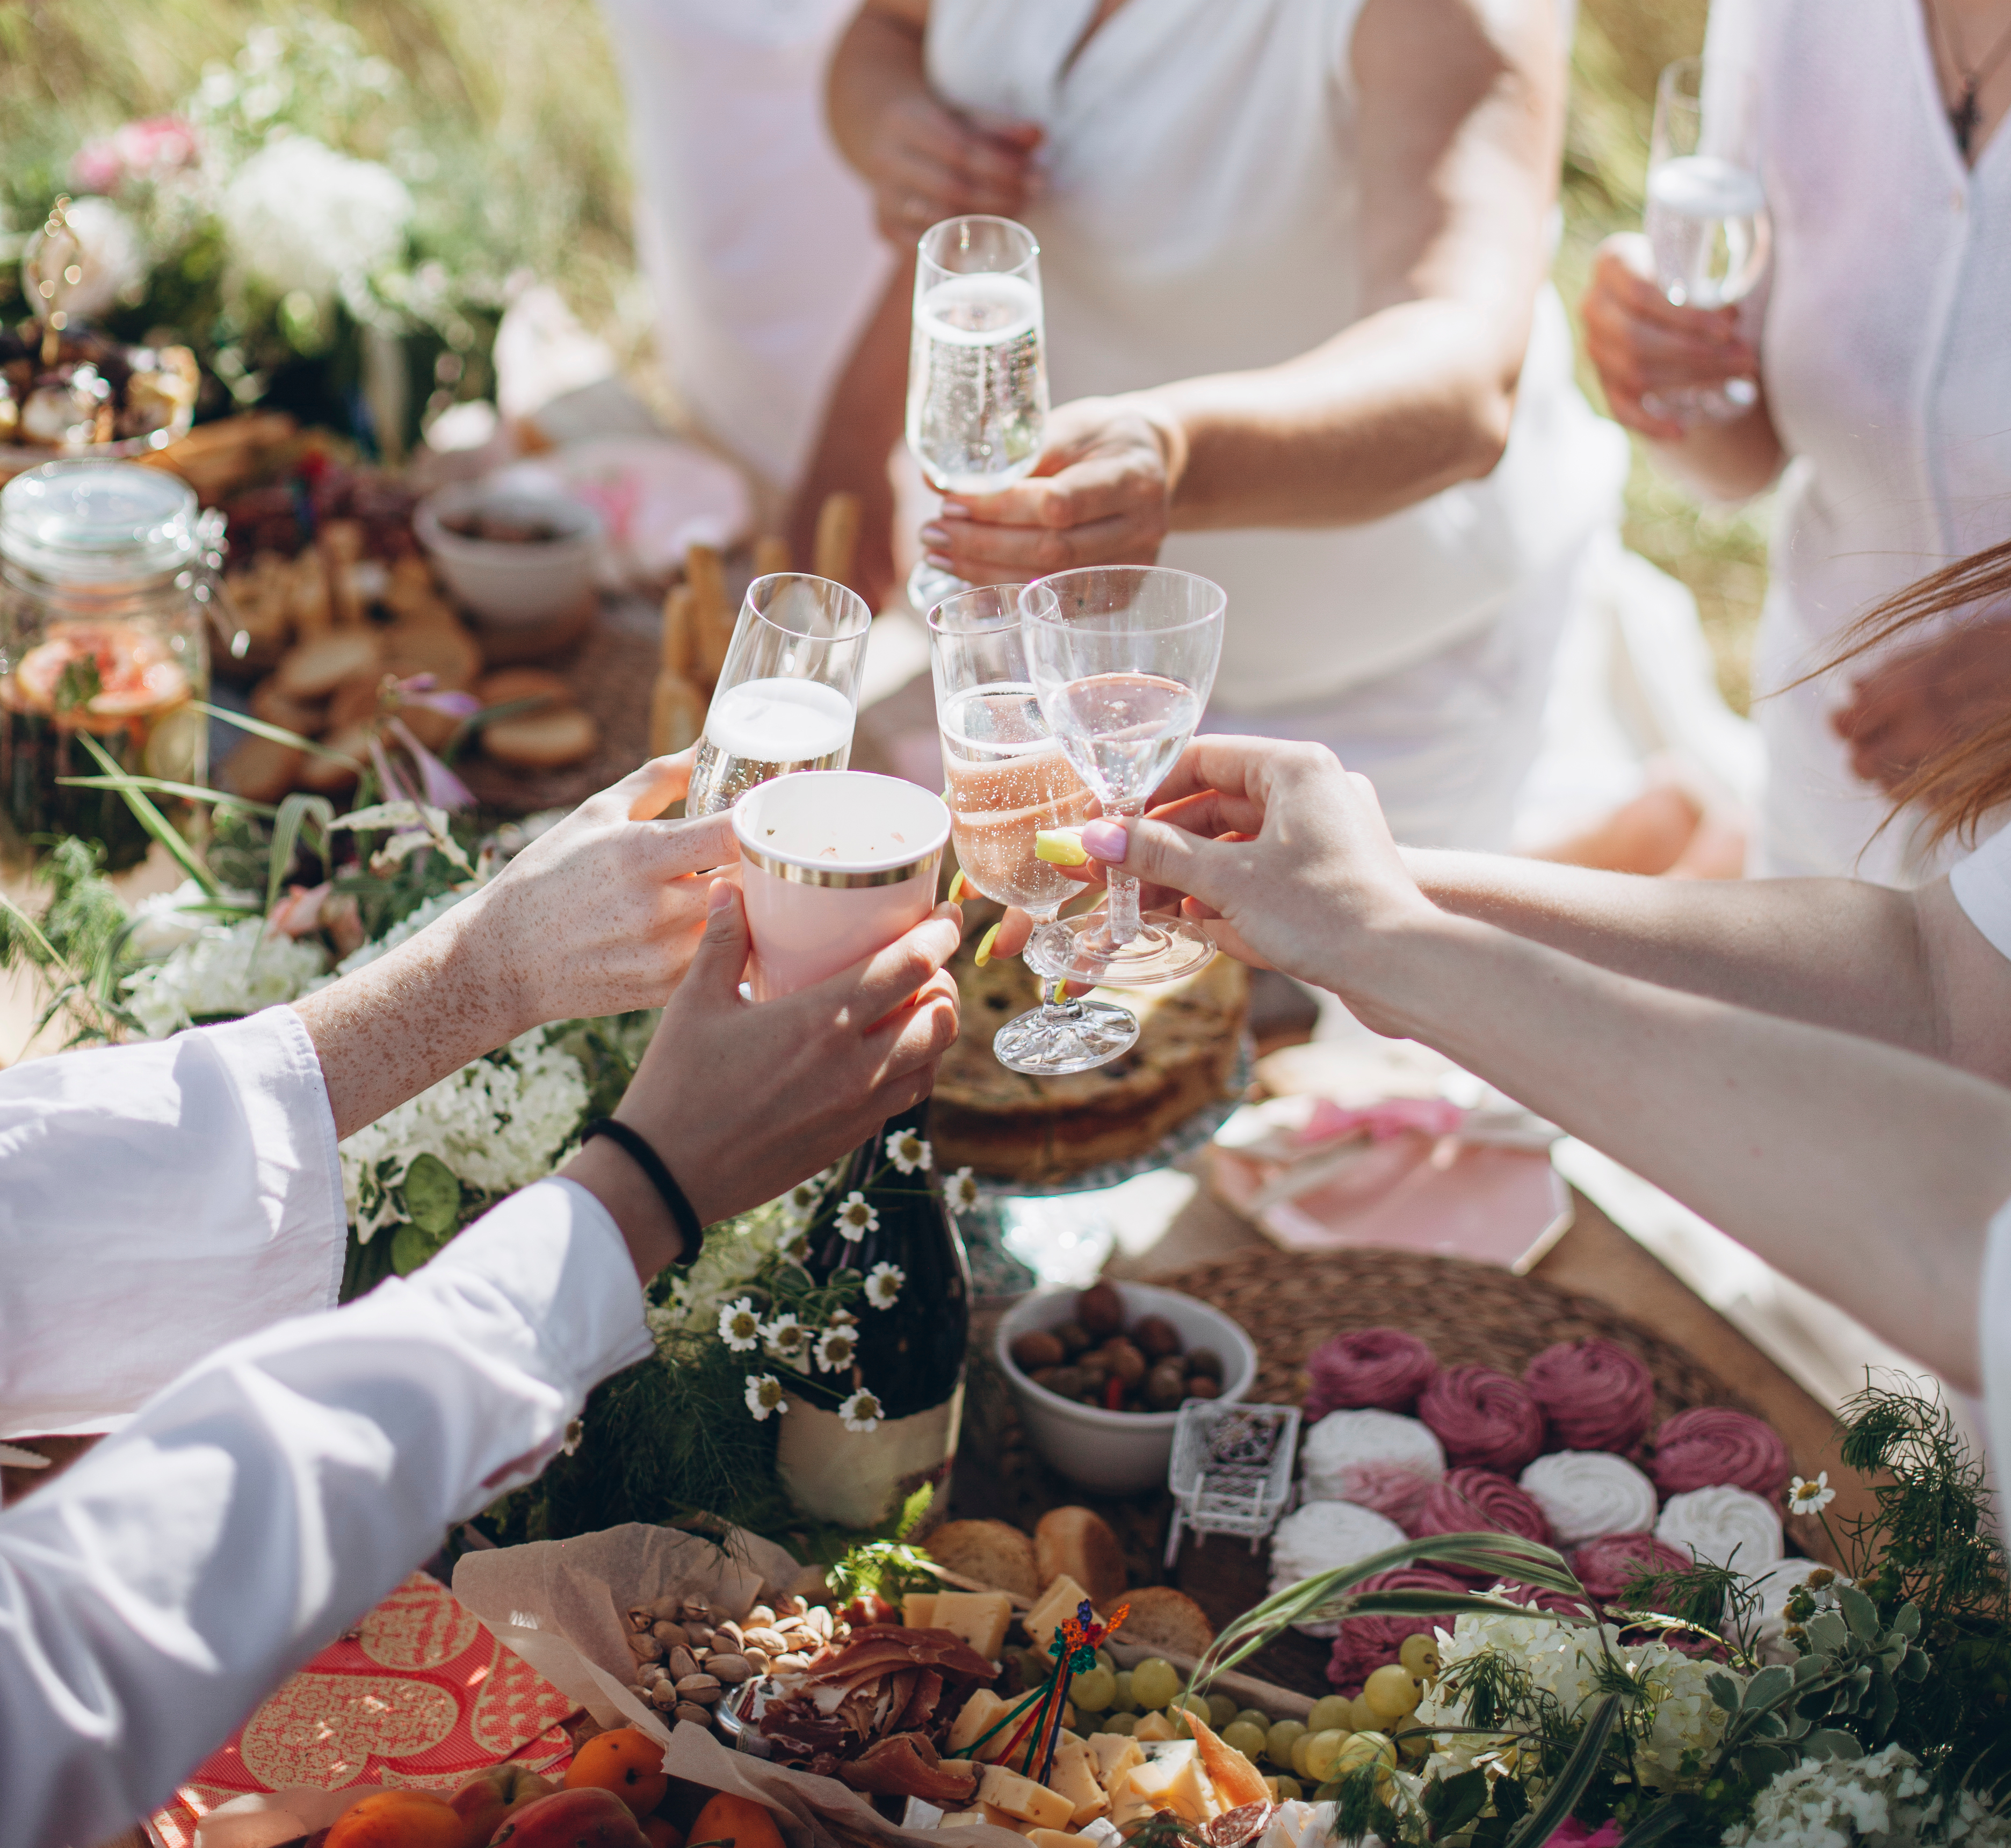 Hands of people wearing white around a picnic table toast with bubbly in glasses.